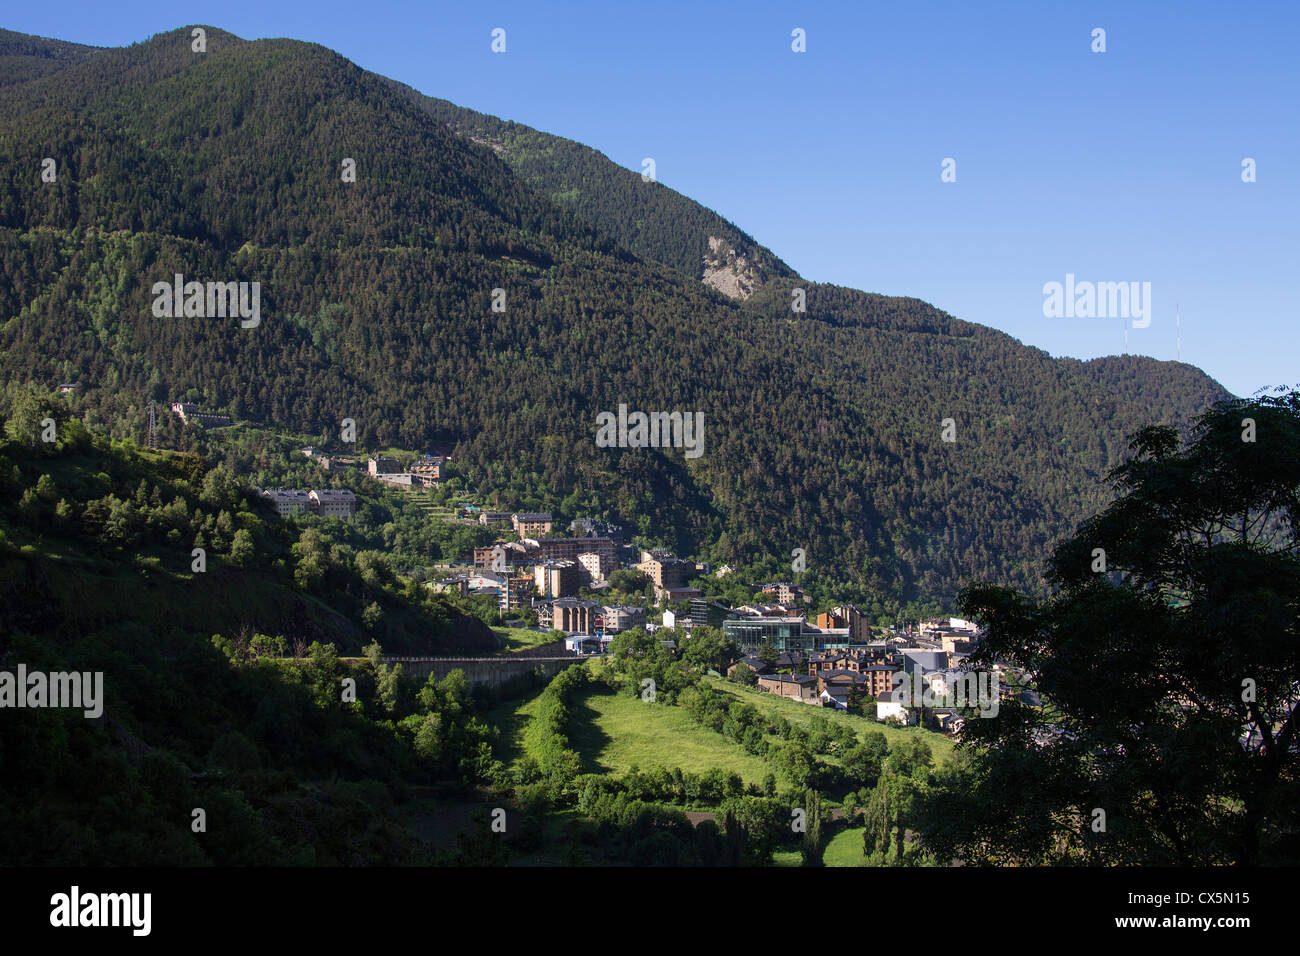 The town of Encap in the autonomous principality of Andorra in the southern Pyrenees - Stock Image